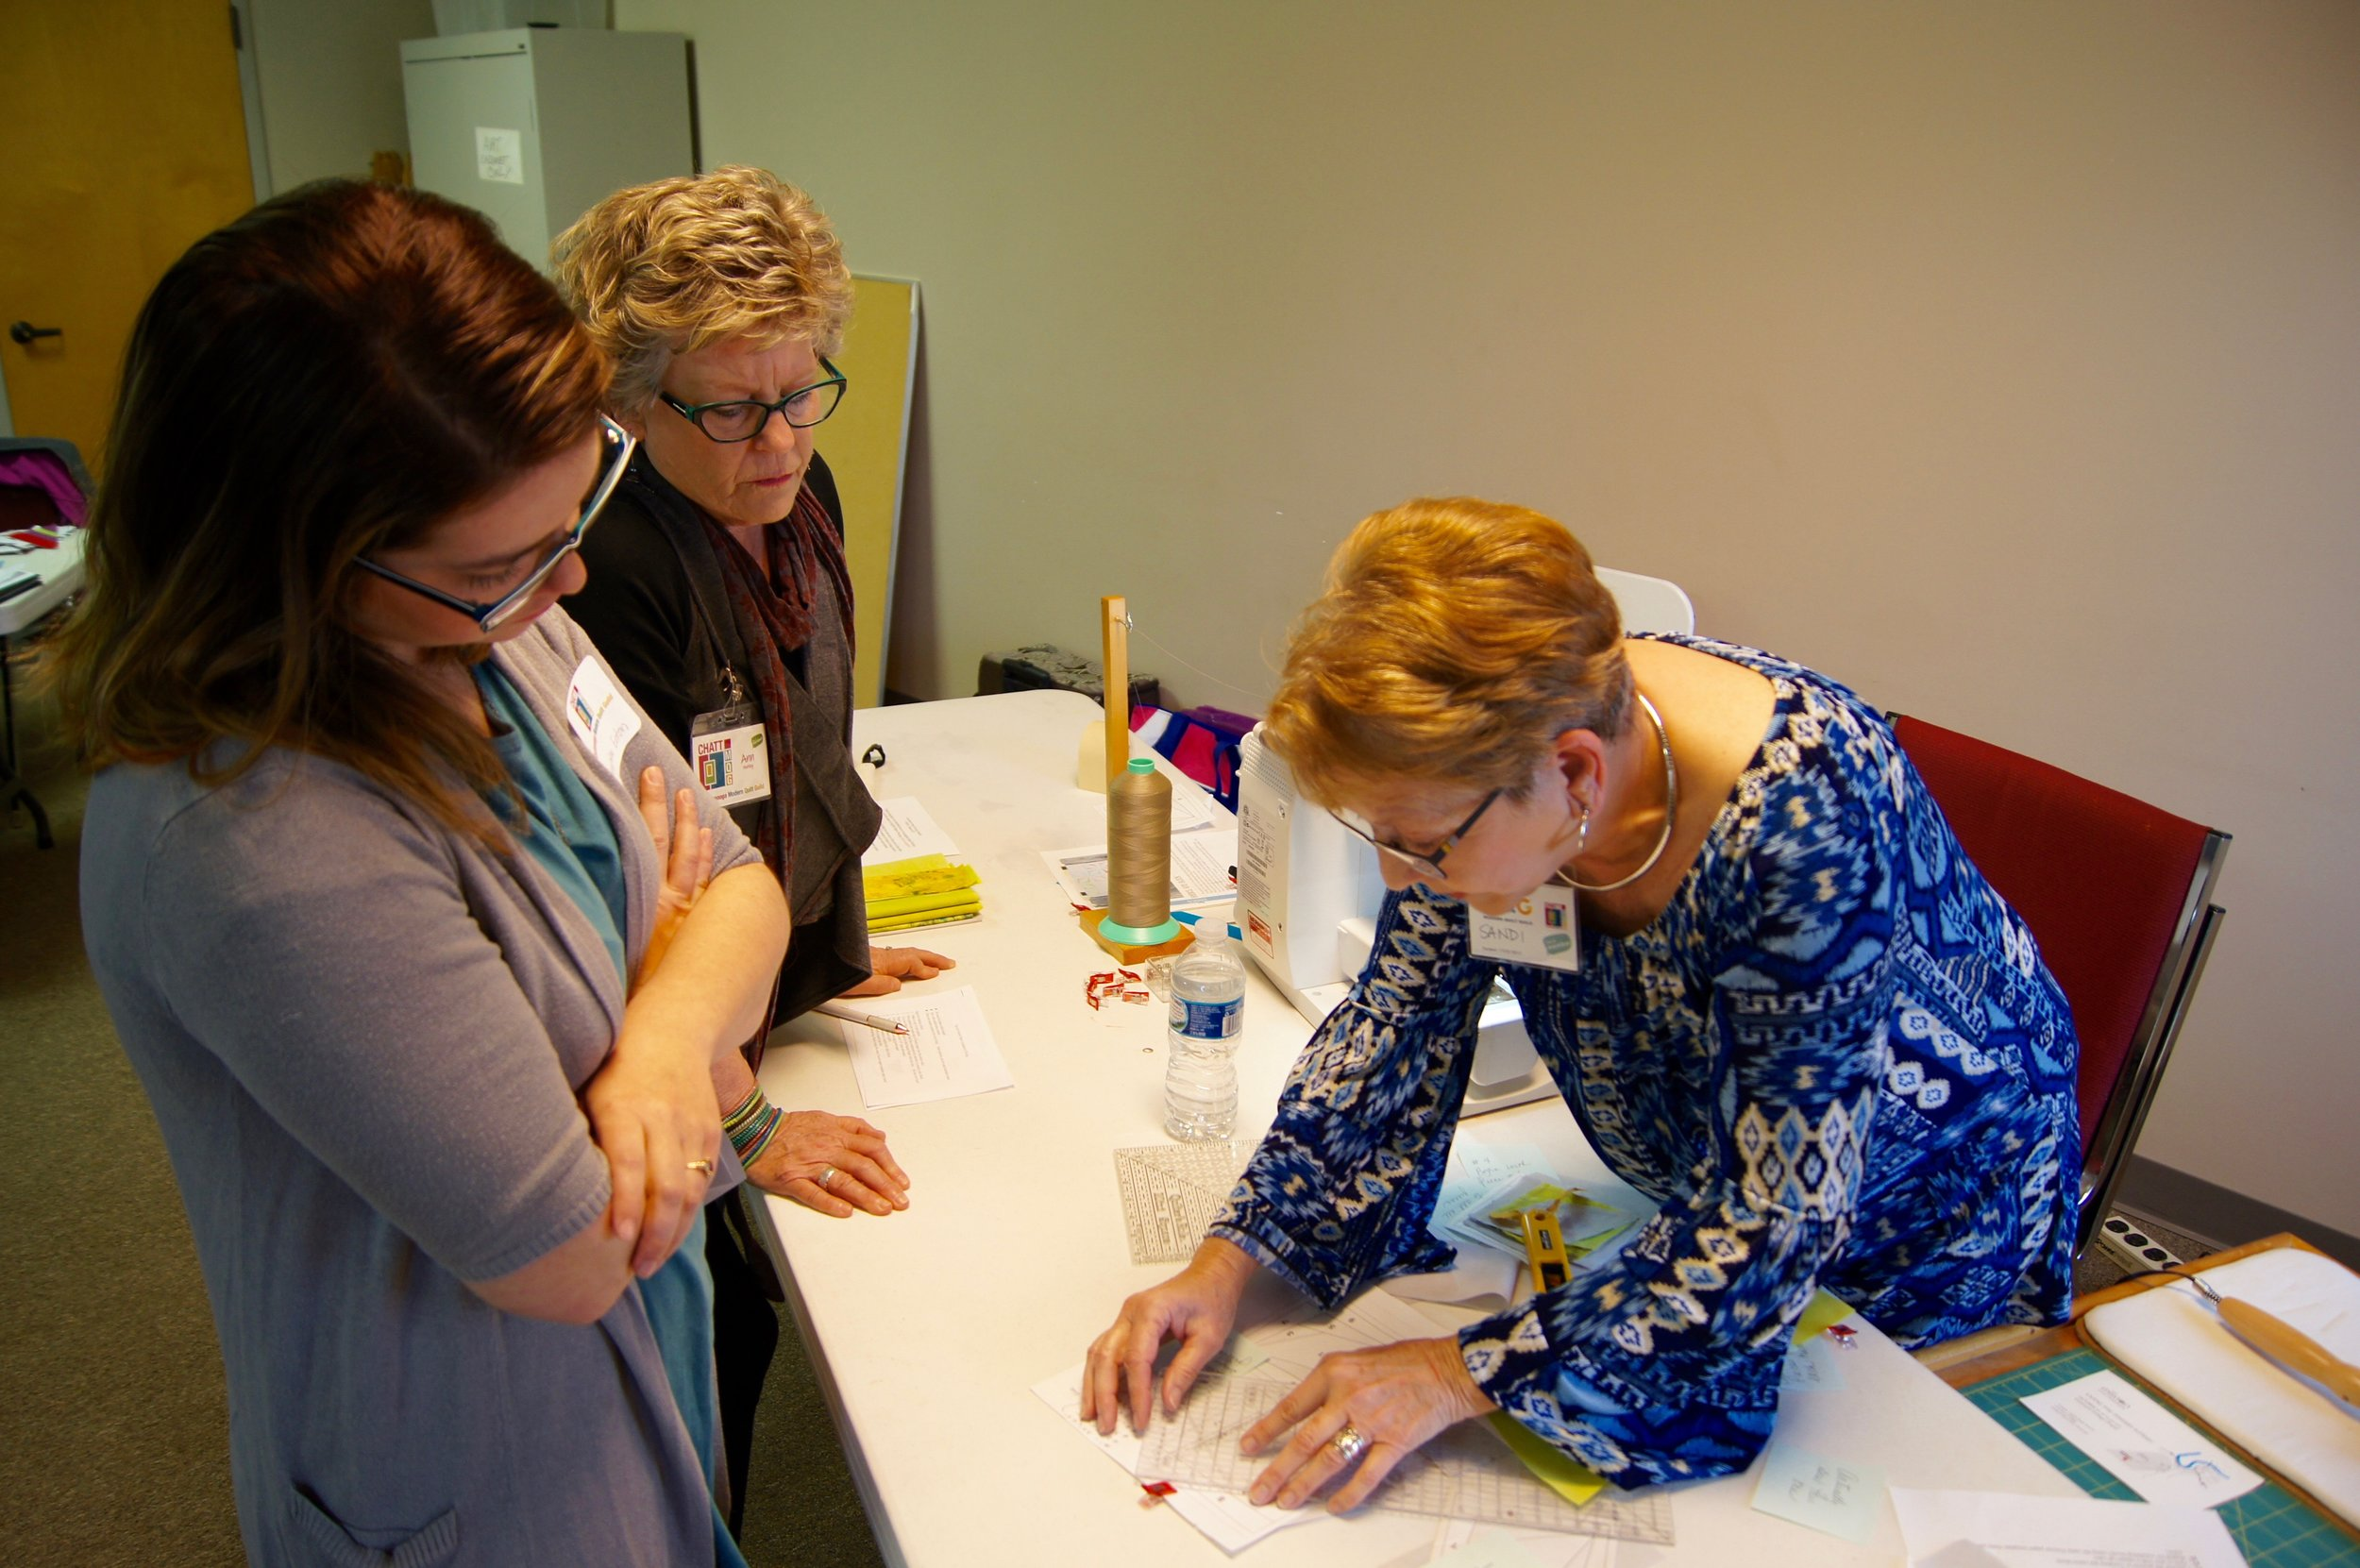 Sandi Suggs demonstrates her process with freezer paper